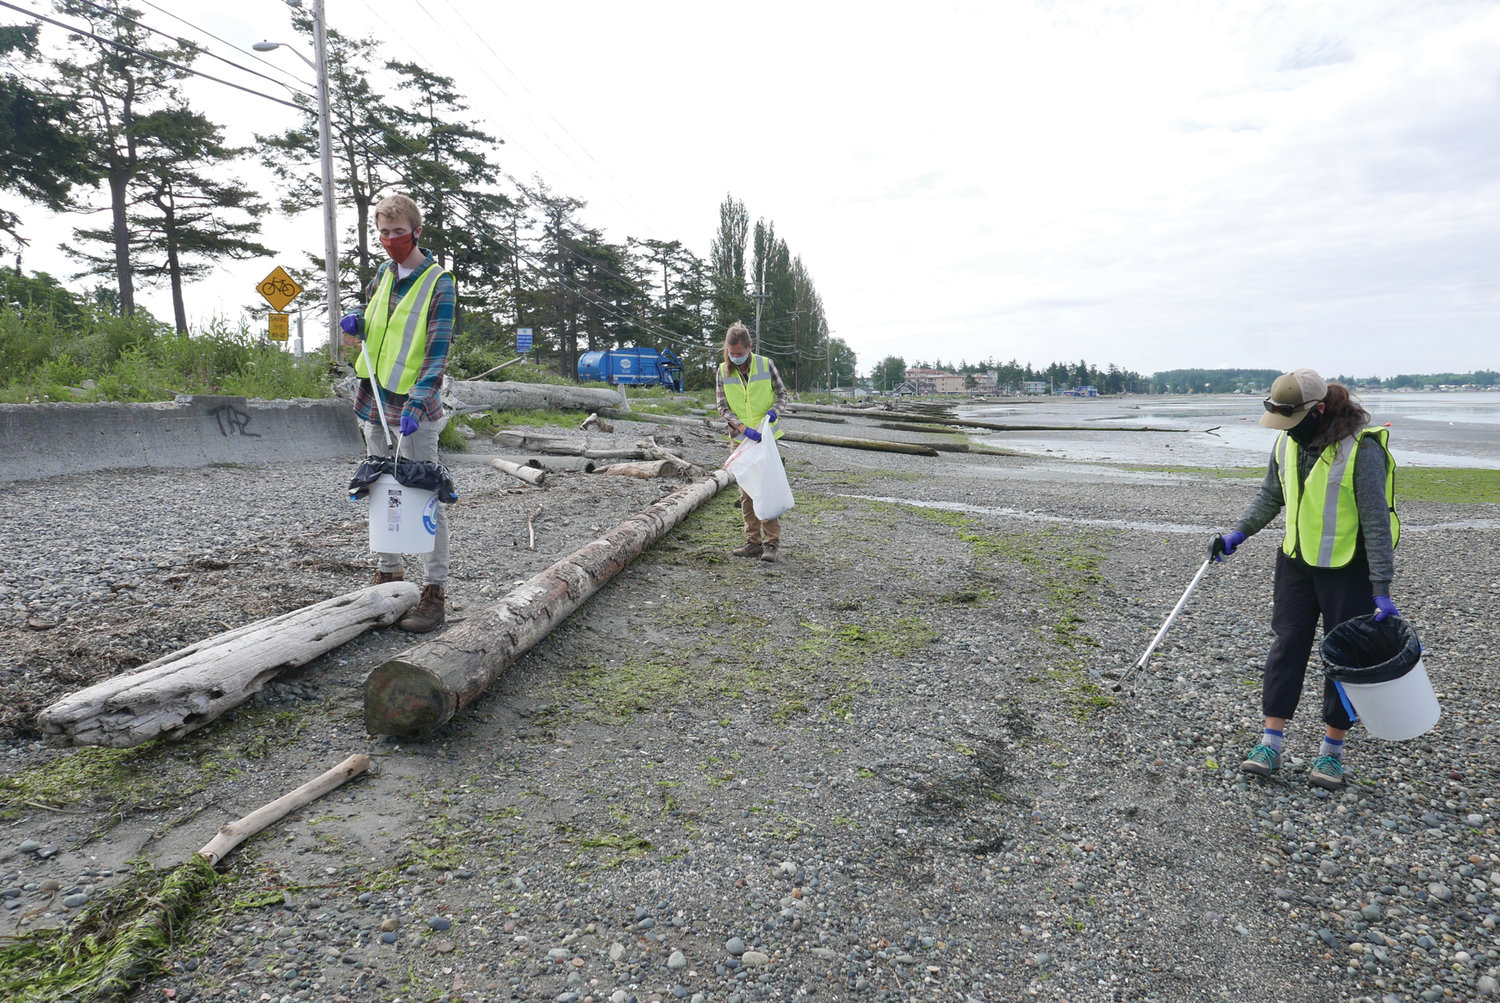 Volunteers picked up trash and debris at Birch Bay after the Fourth of July. Pictured above, a team from the Birch Bay Watershed & Aquatic Resources Management District pickup trash on July 6. From l., Lars Olson, Whatcom County stormwater education specialist; Holly Faulstich, Whatcom County stormwater programs specialist; and Aneka Sweeney, Whatcom Conservation District's education and outreach coordinator.